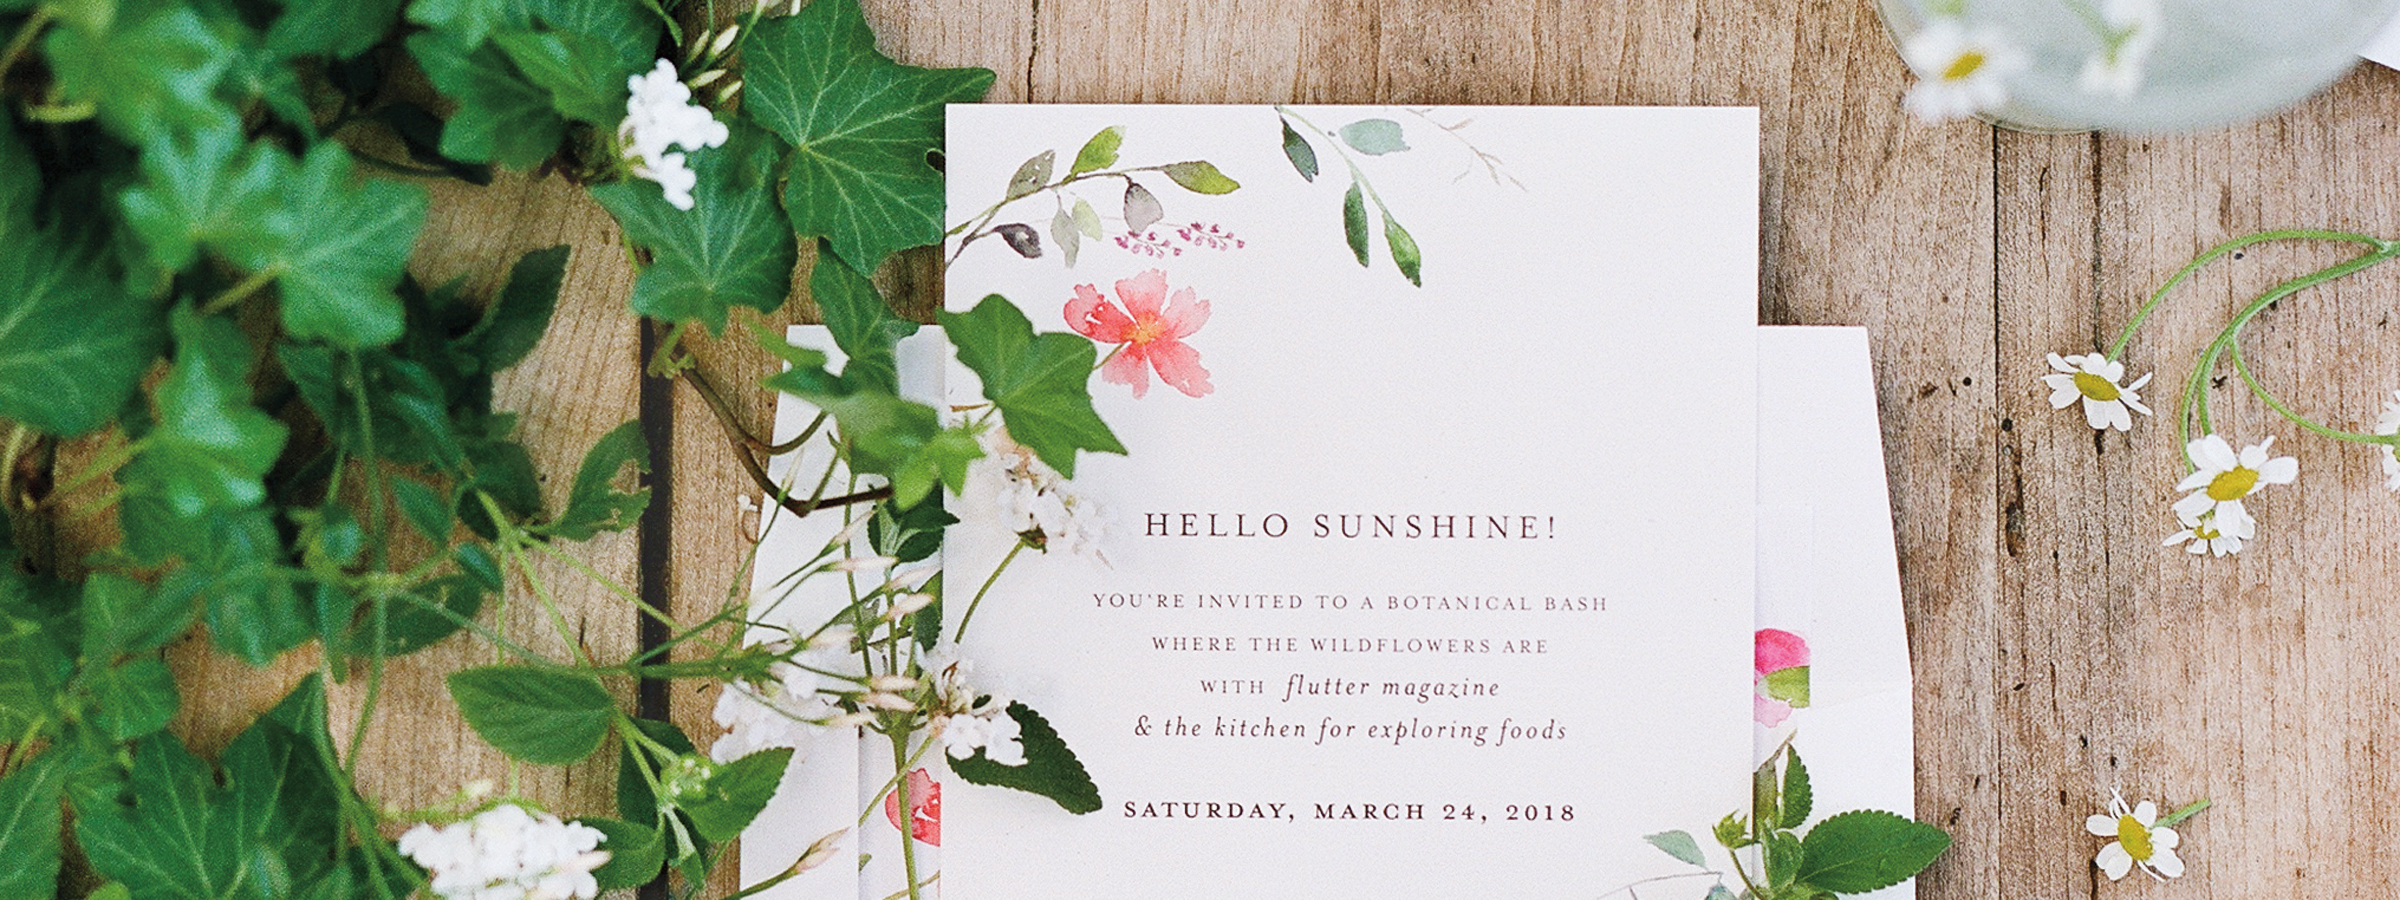 flutter magazine issue 16 – floral party invitations from minted